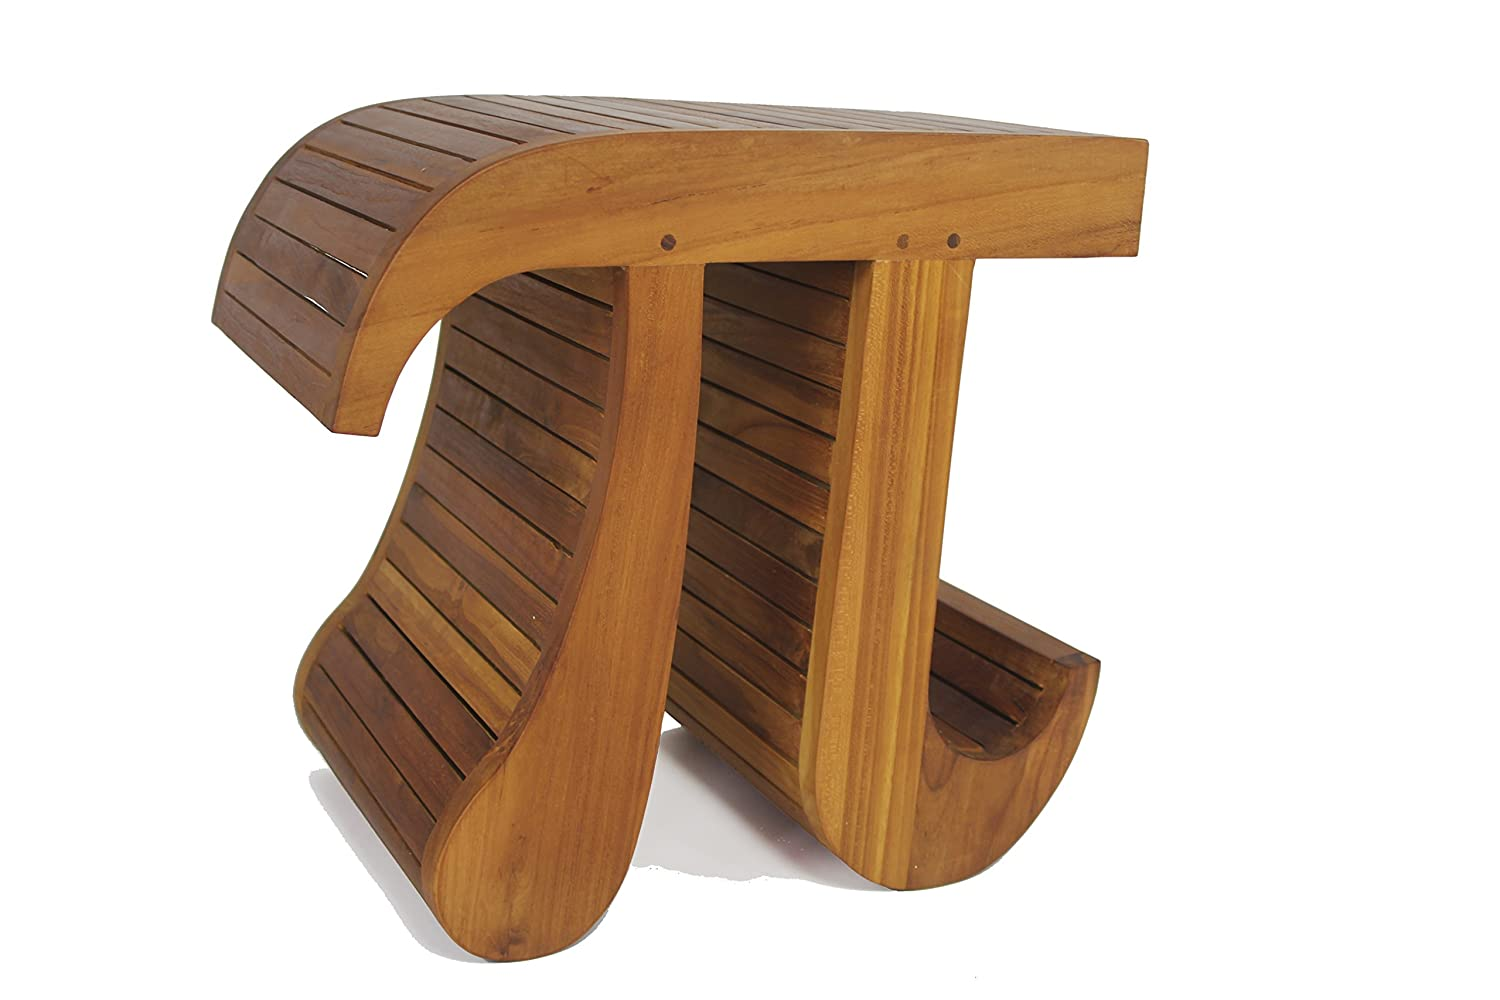 sc 1 st  Amazon.com & Amazon.com: Pi-Shaped Teak Bench: Sports u0026 Outdoors islam-shia.org